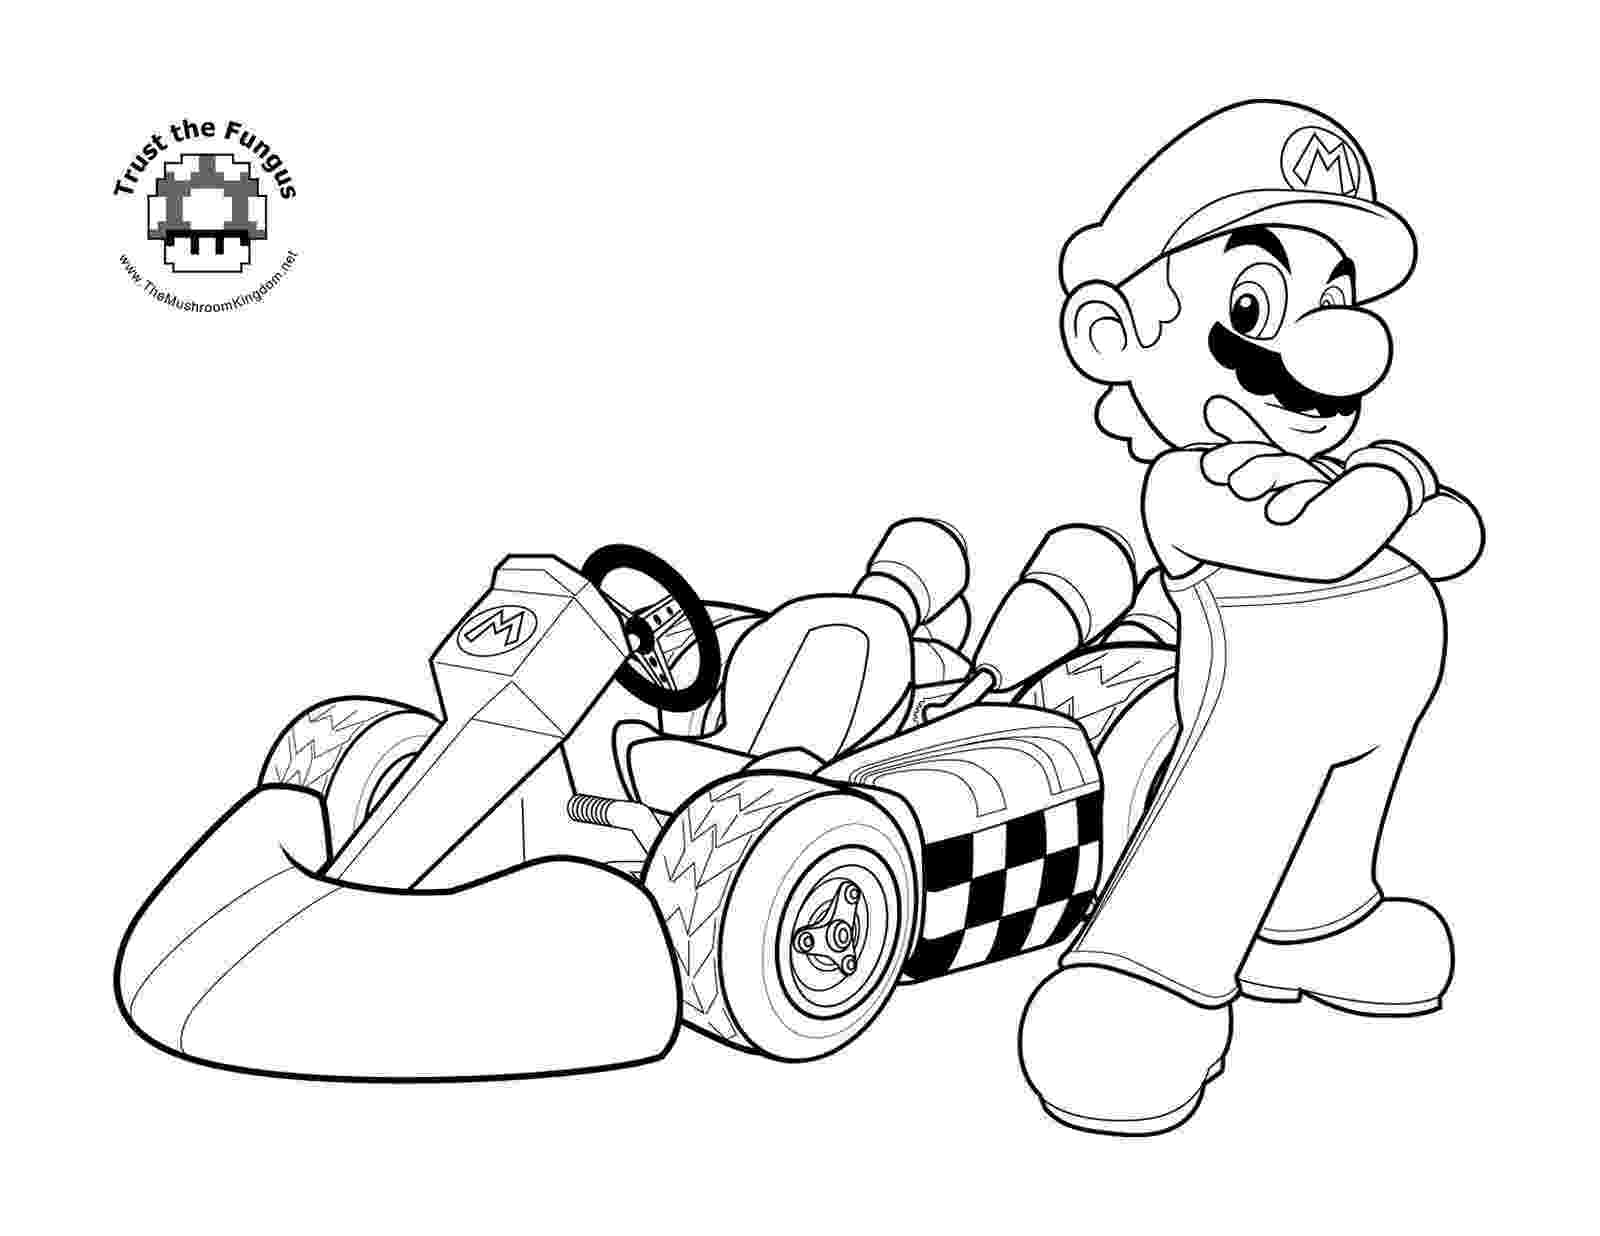 super mario bros pictures to print and colour super mario princess mushroom coloring page super mario colour bros to and print super mario pictures